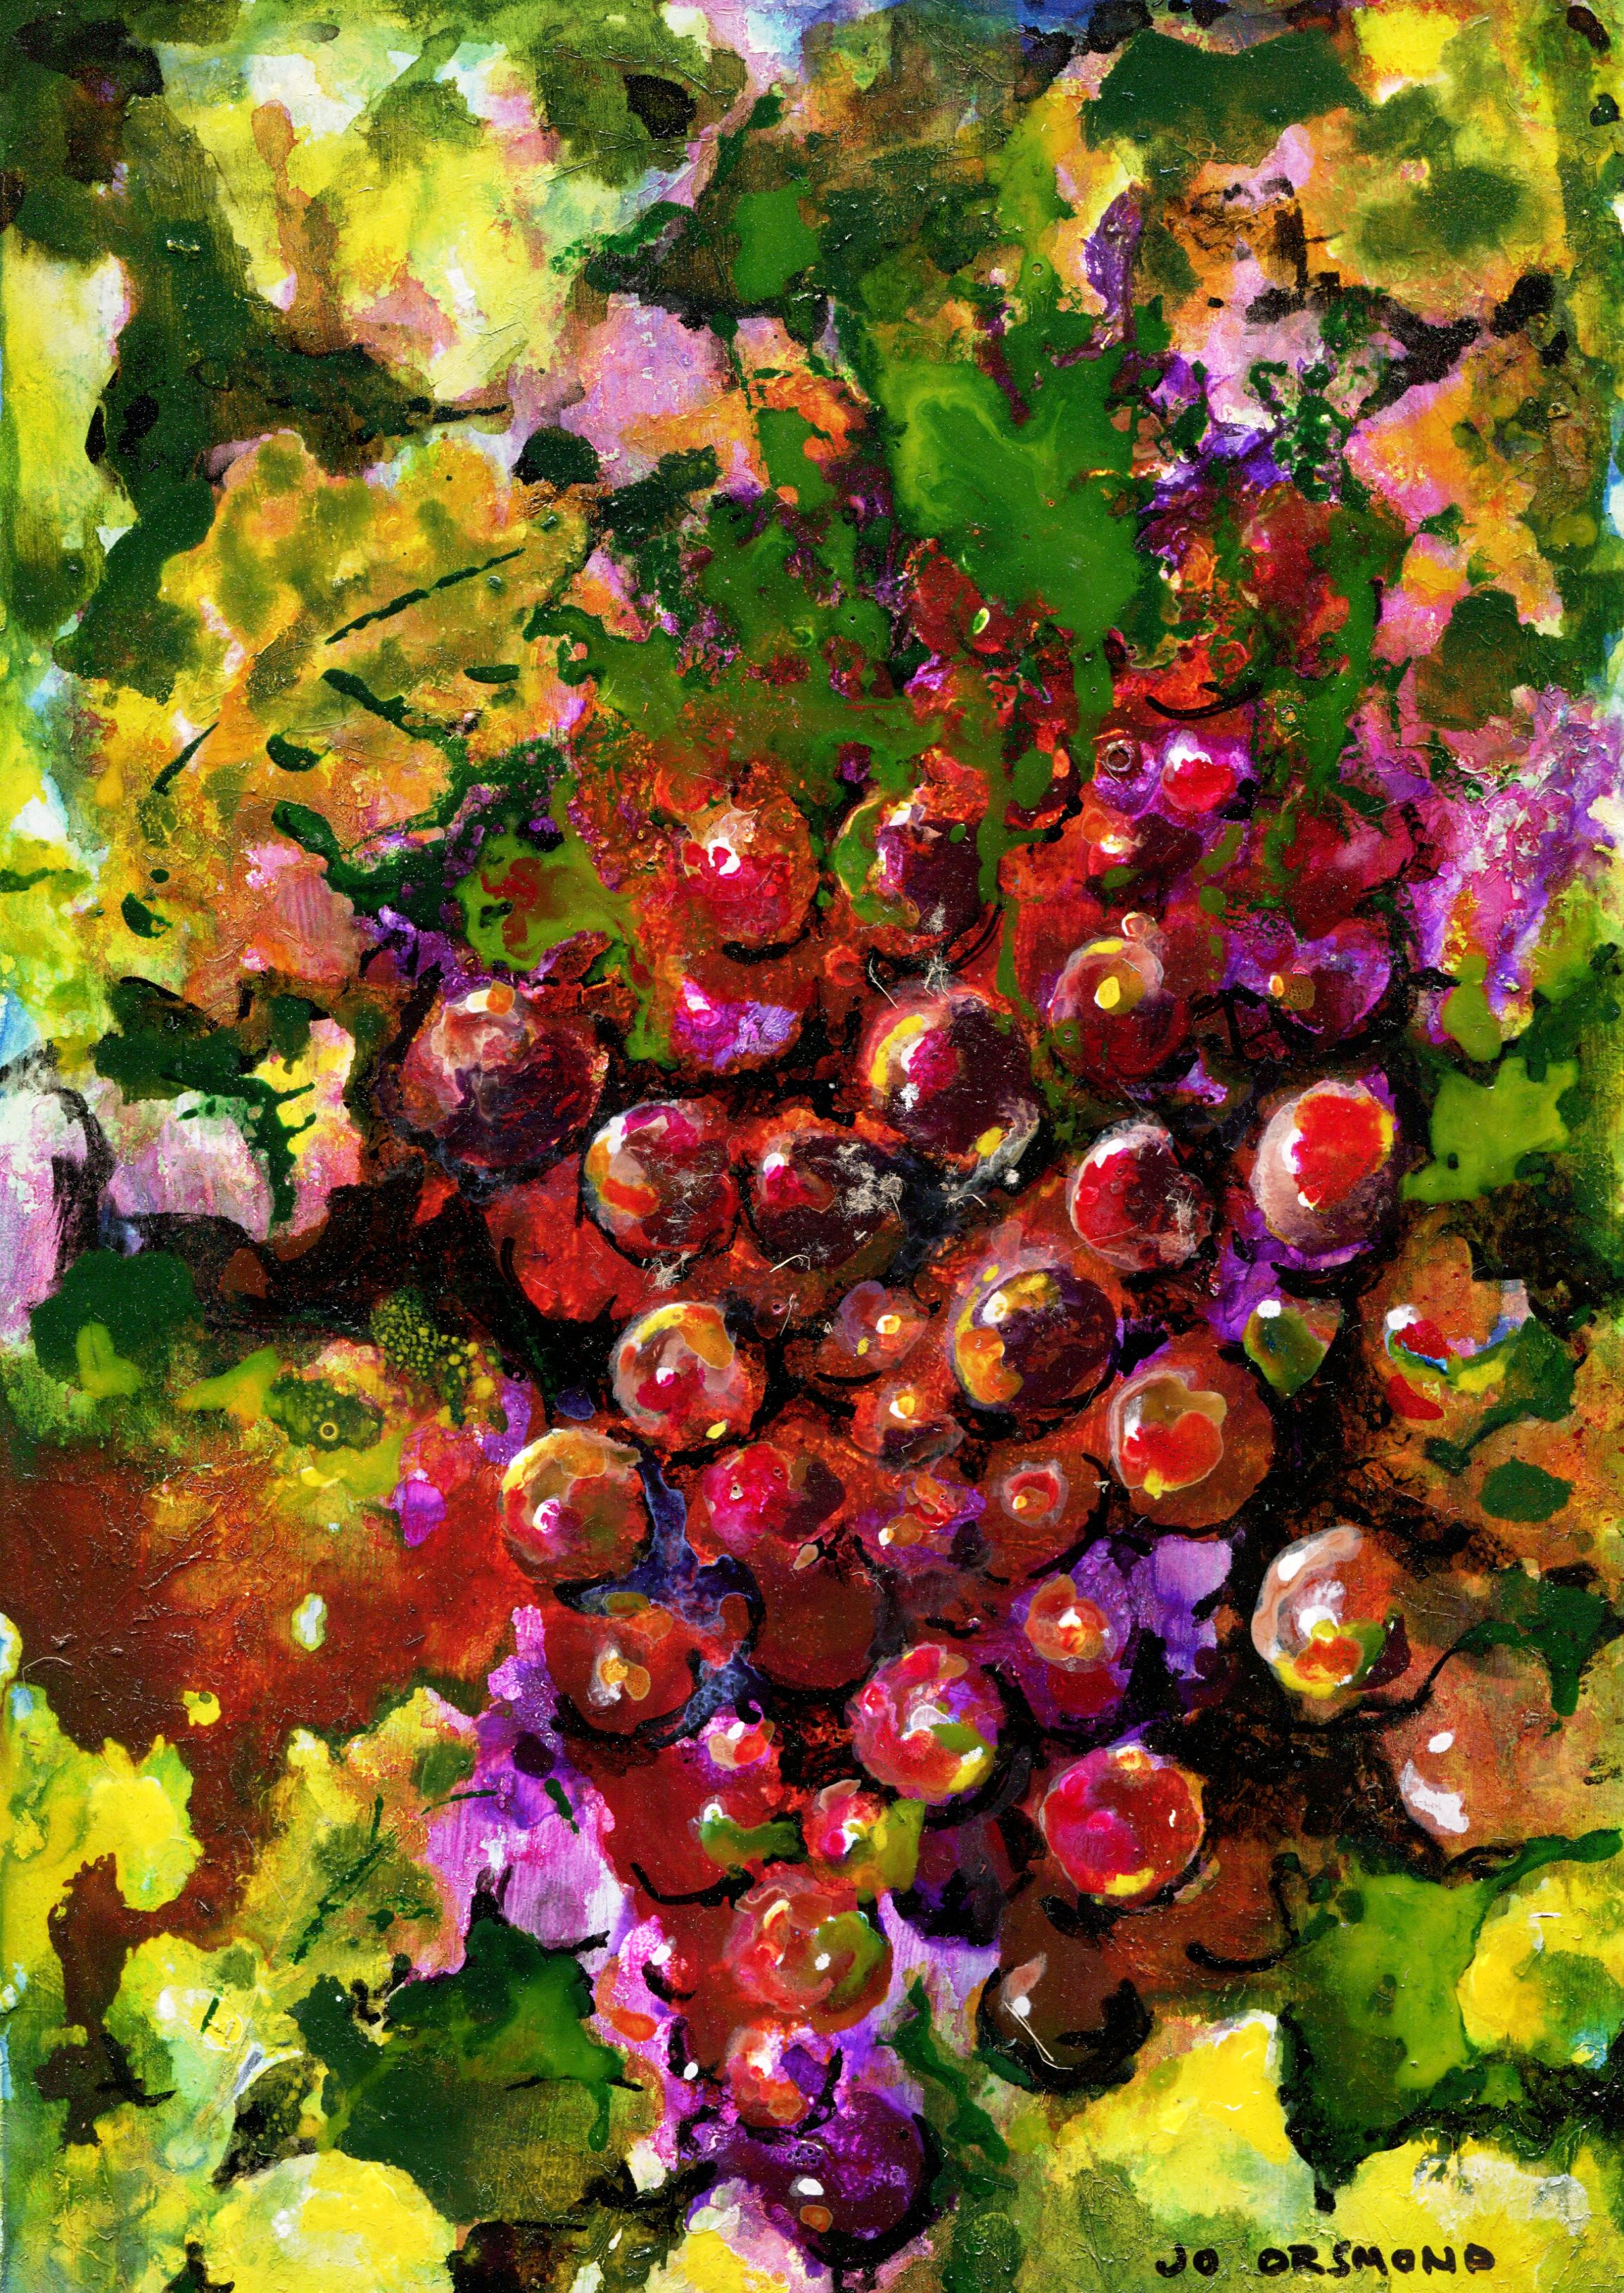 14B JO ORSMOND, HIDDEN GRAPES, ACRYLIC & INK ON BOARD